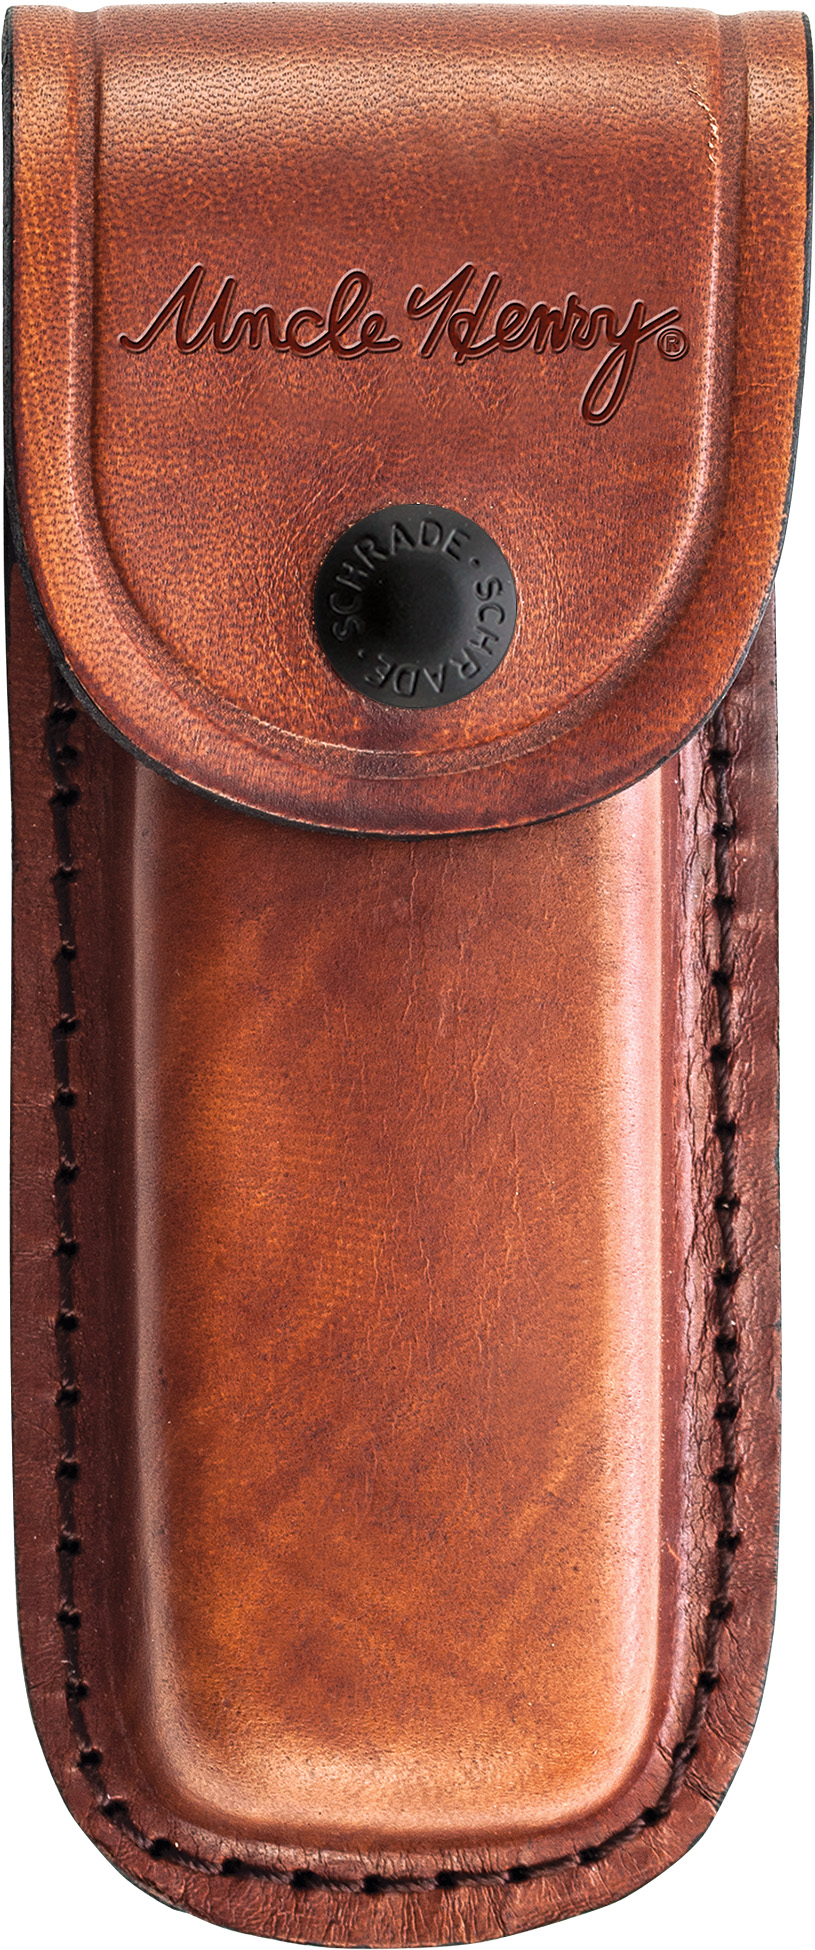 LS6 - Schrade Large Leather Sheath Brown (Uncle Henry)